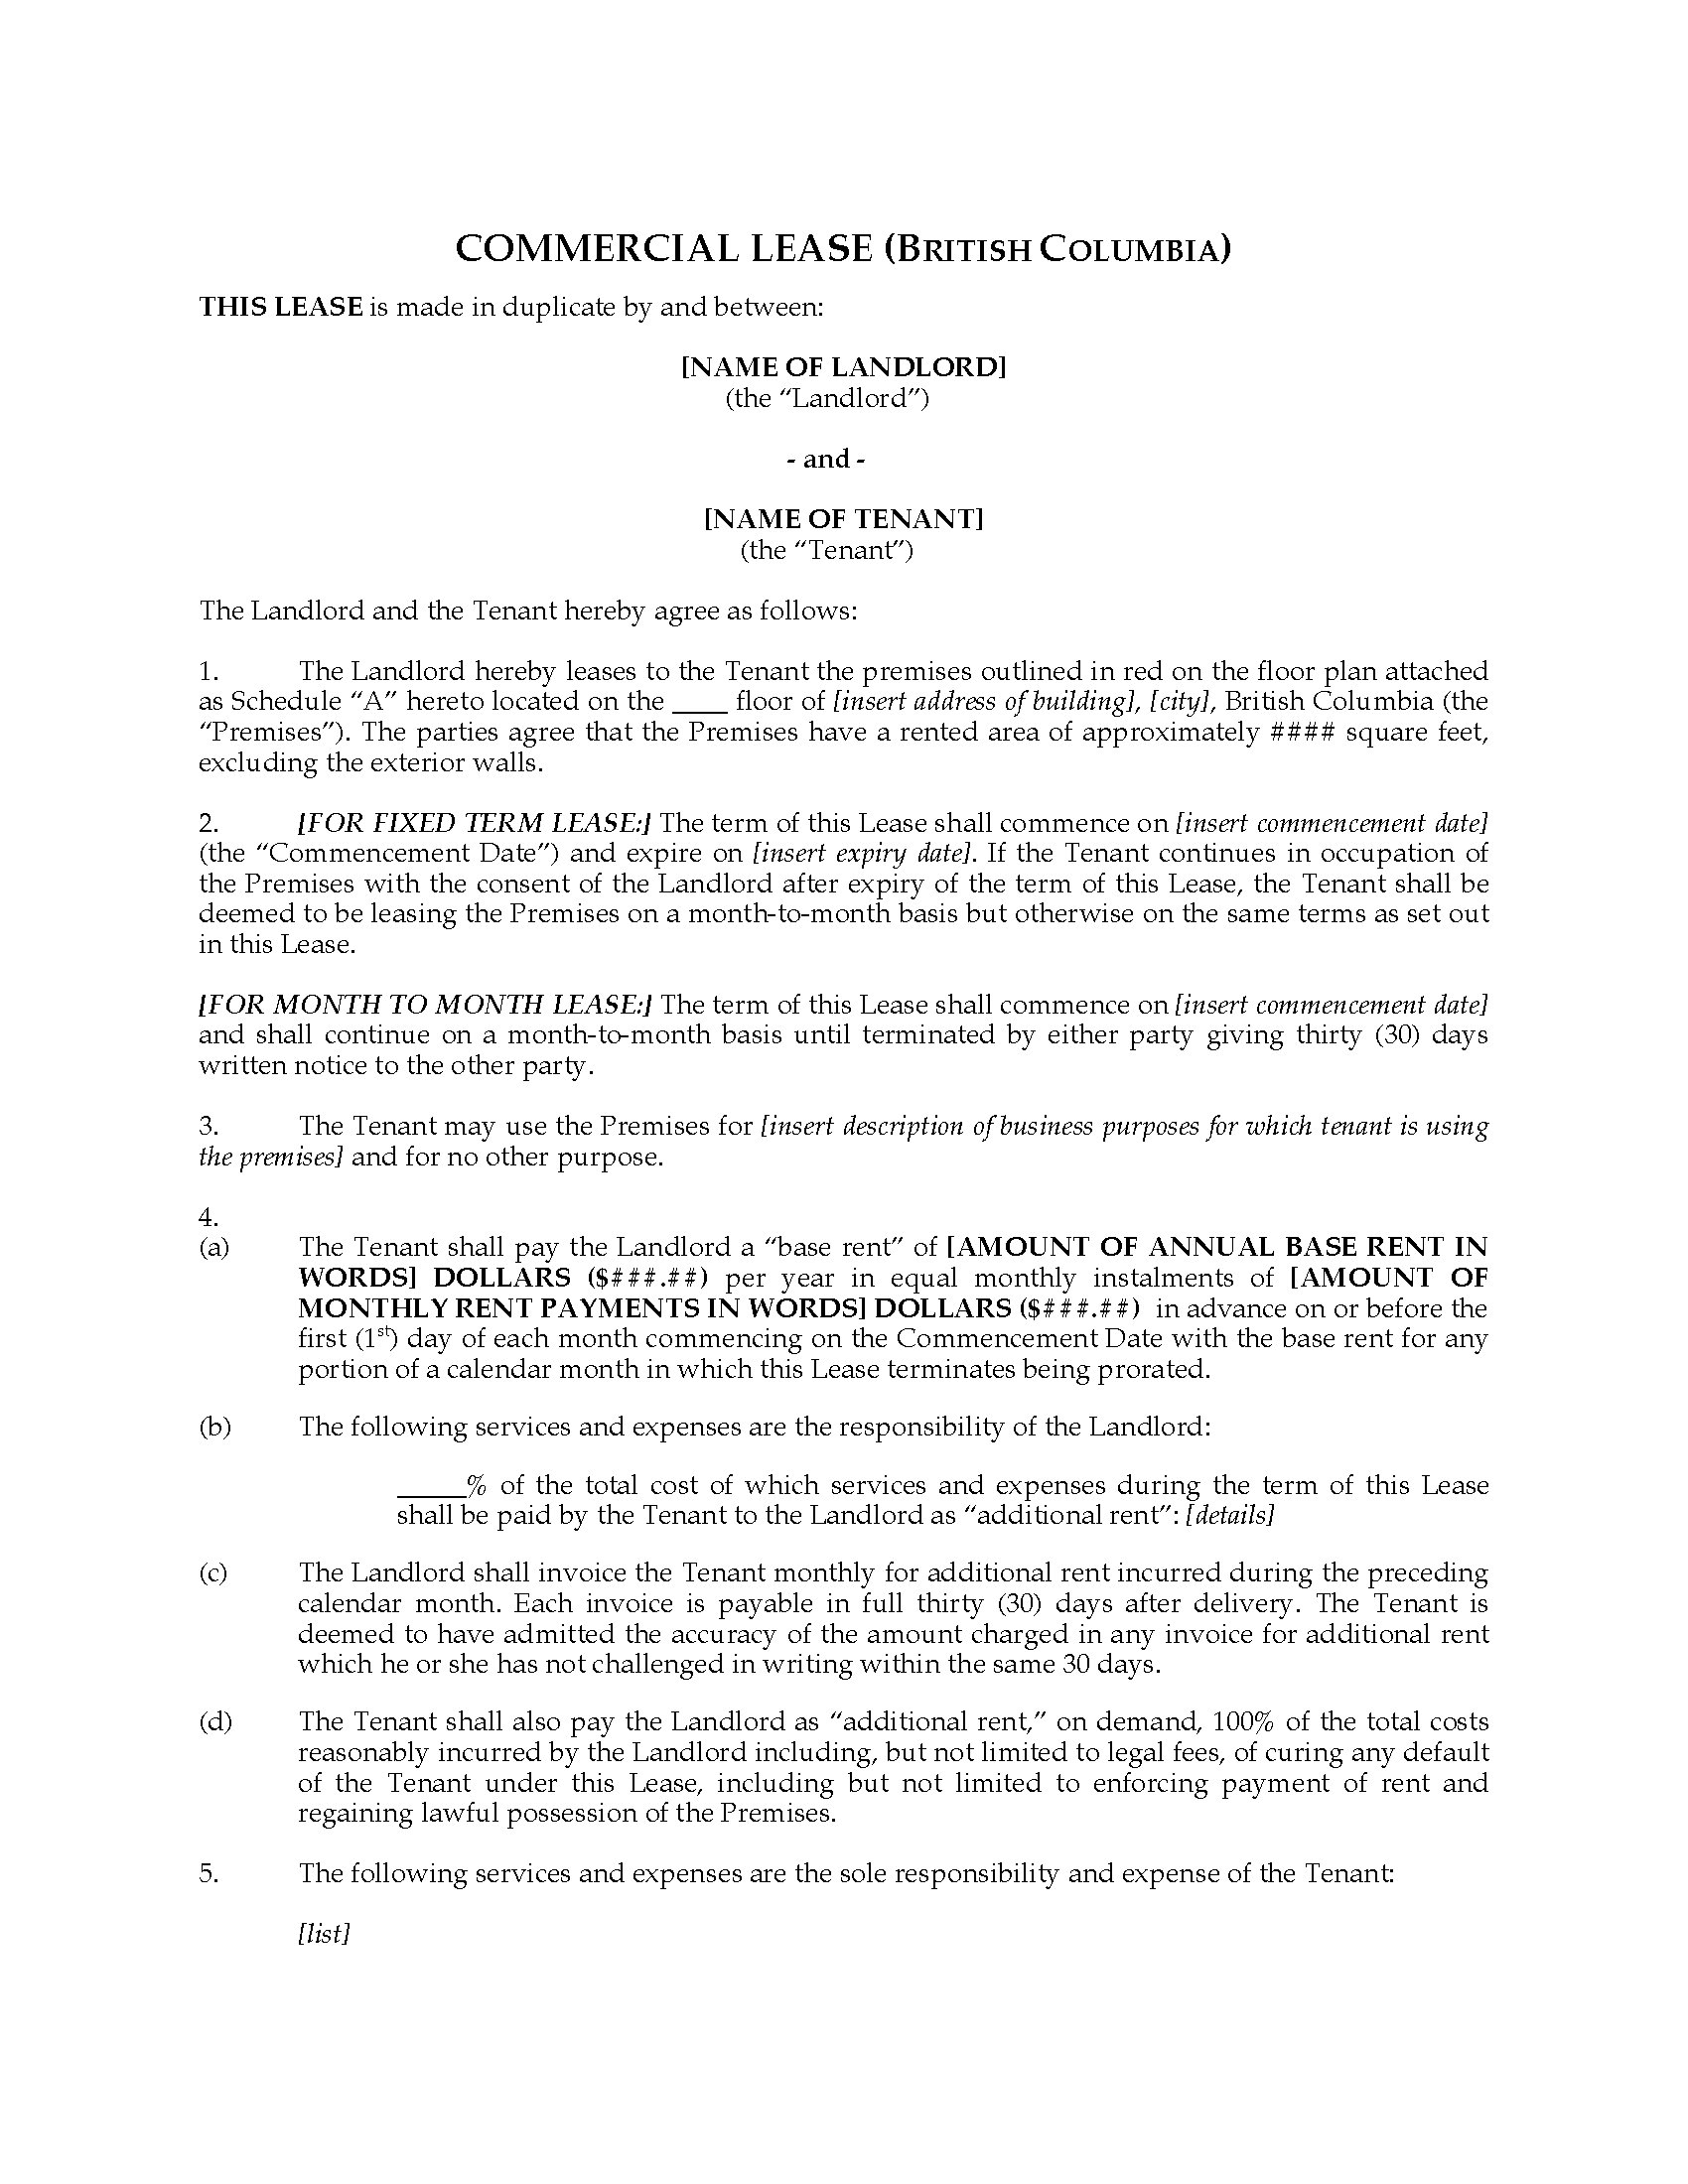 Business Lease Agreement | British Columbia Commercial Lease Agreement For Fixed Or Monthly